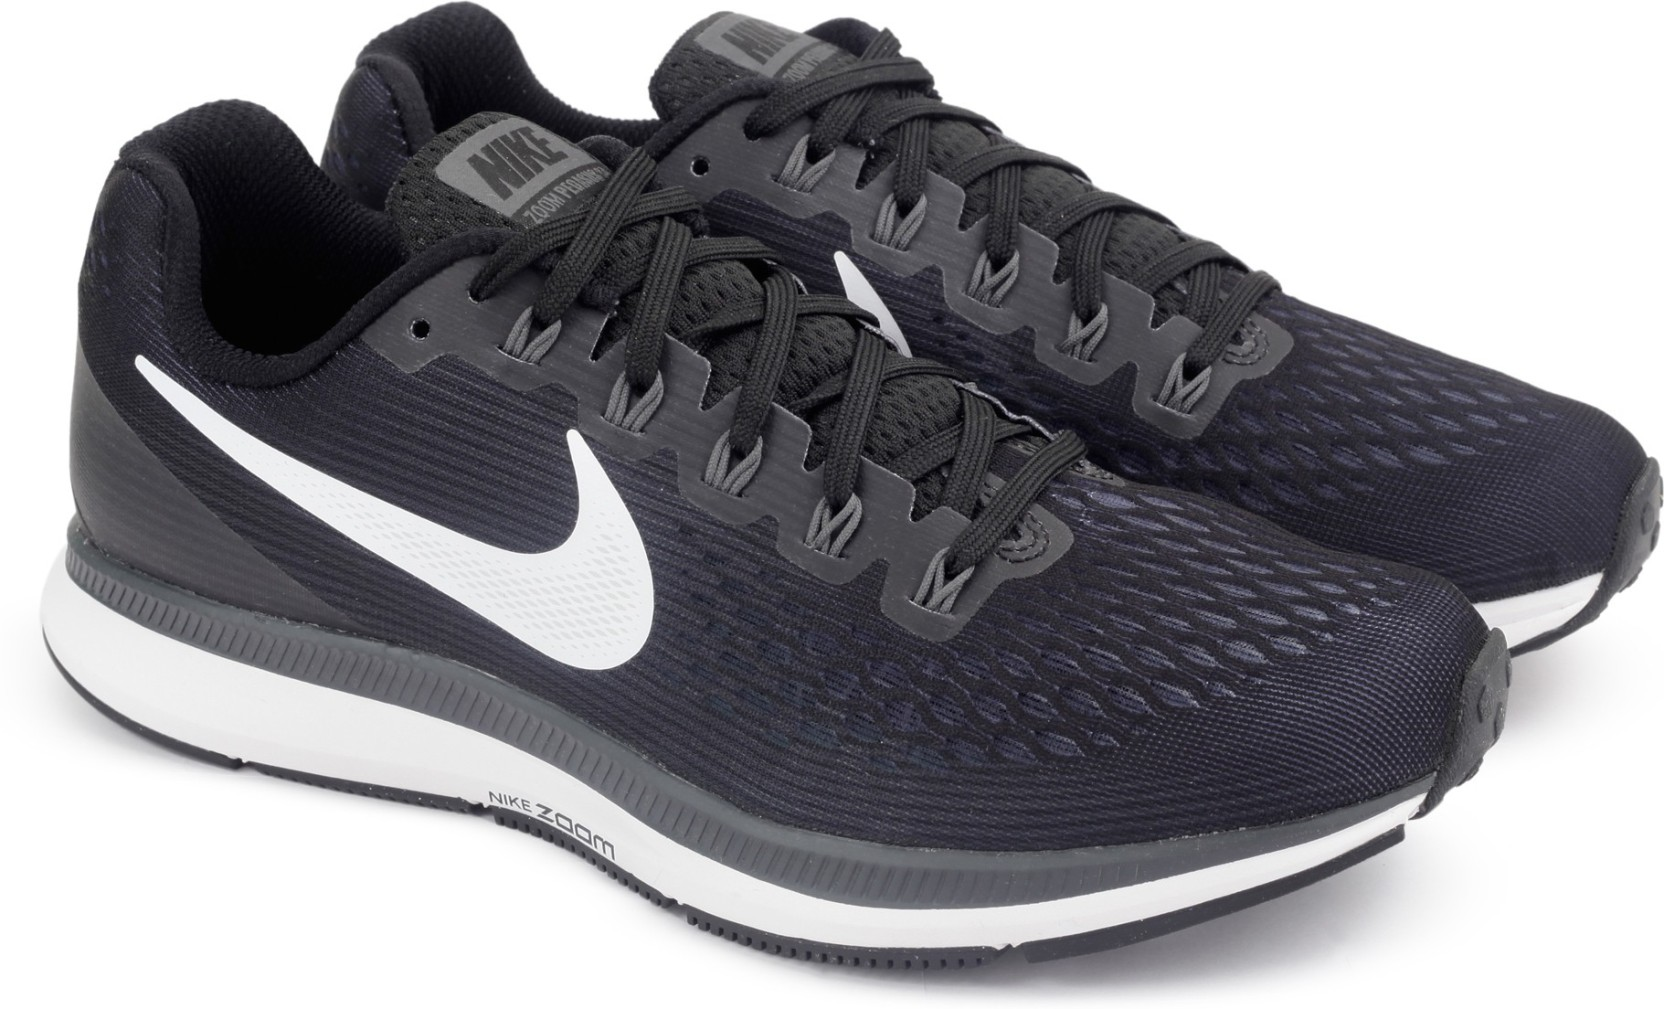 nike air zoom pegasus 34 running shoes buy black white dark grey anthracite color nike air. Black Bedroom Furniture Sets. Home Design Ideas